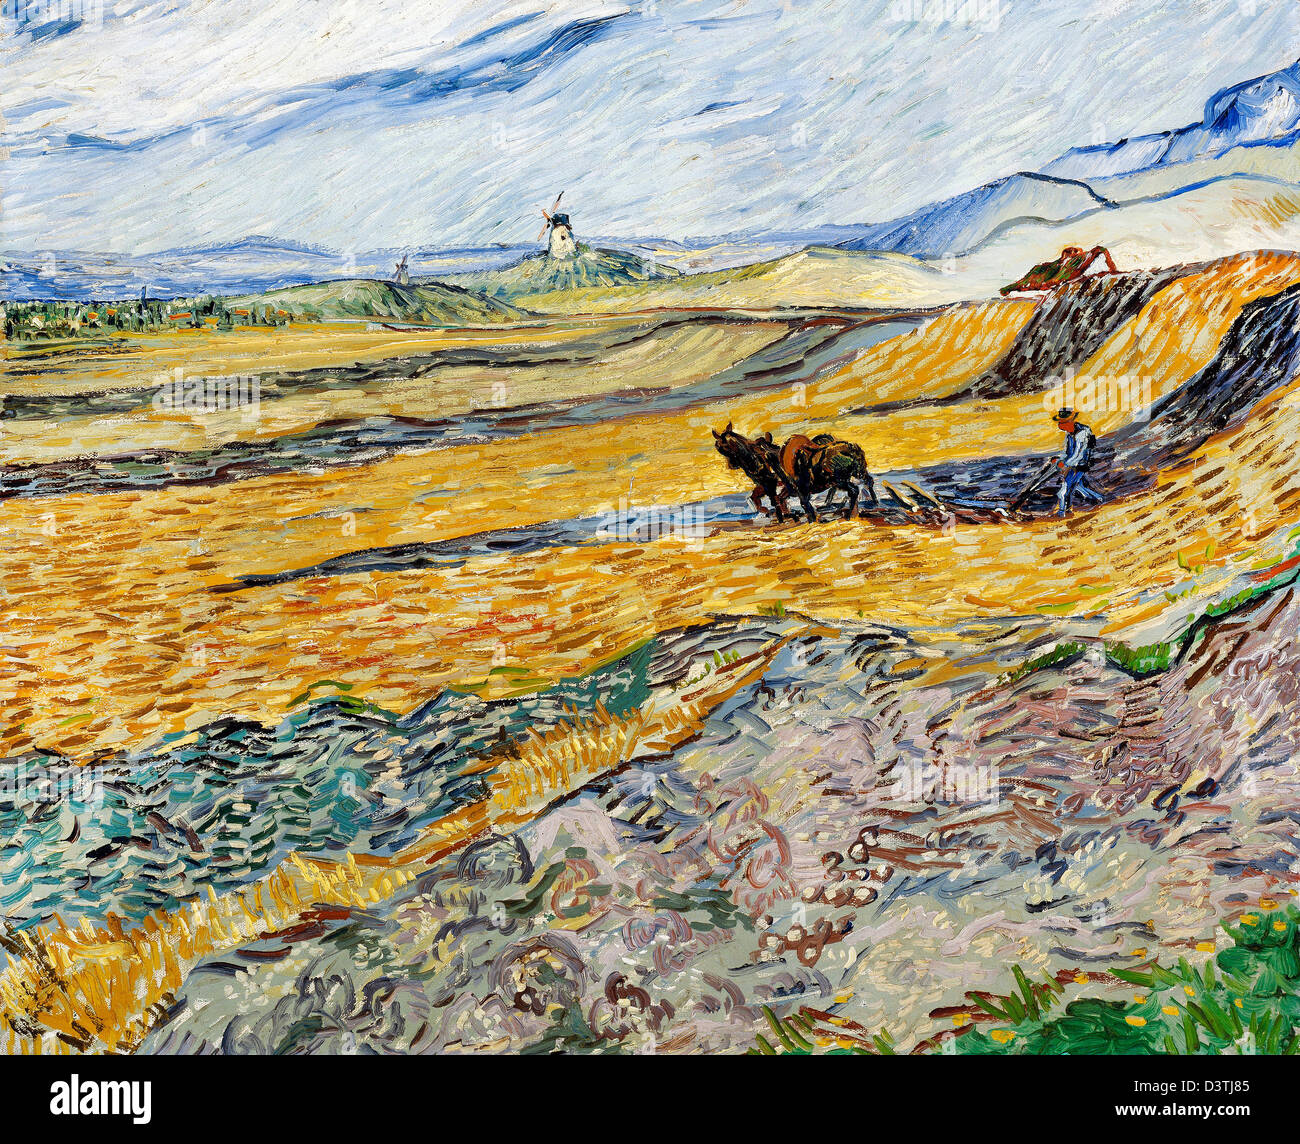 Vincent van Gogh, Enclosed Field with Ploughman 1889 Oil on canvas. Museum of Fine Arts Boston, Massachusetts - Stock Image